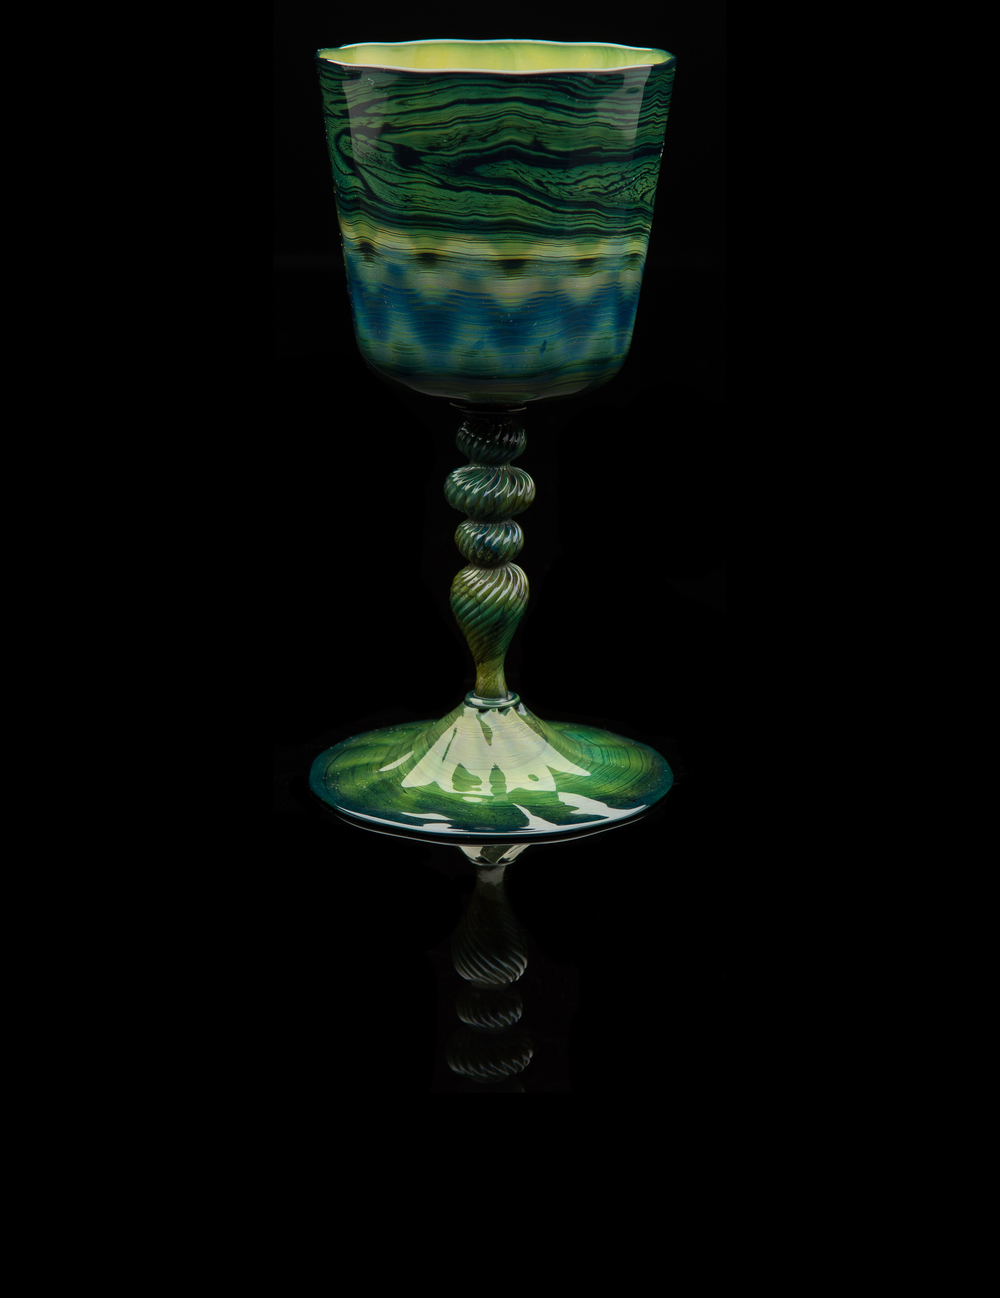 Barovier for Salviati,  Chalcedony Goblet  (glass, 7 x 3 1/4 x 3 1/4 inches), VV.495